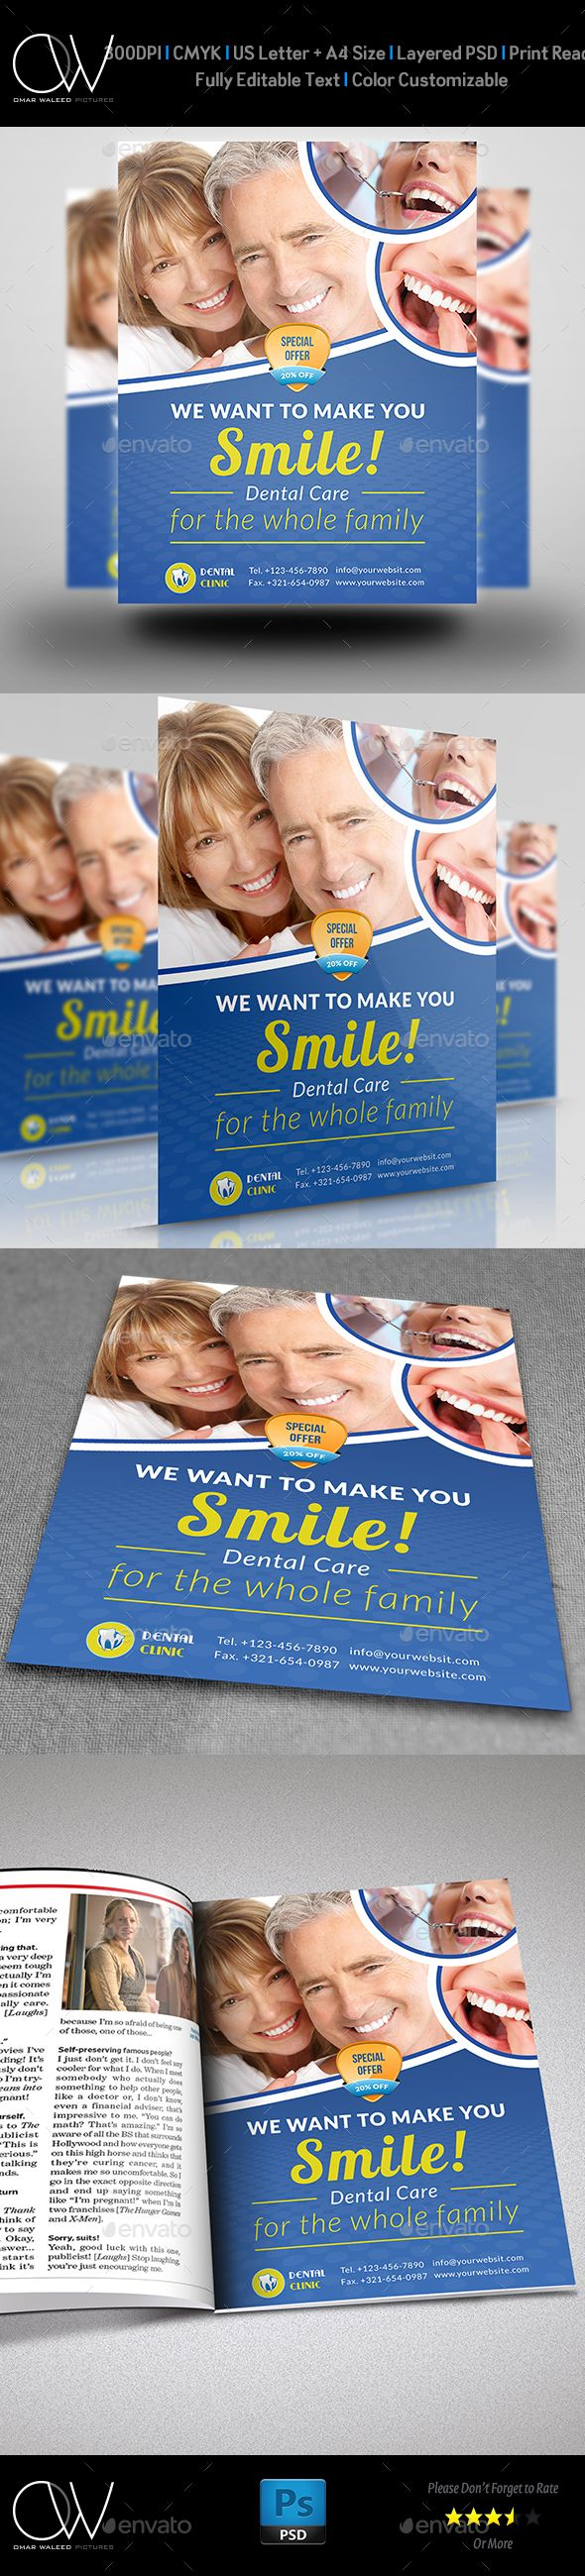 Dental Clinic Flyer Template Commerce Flyers Dental